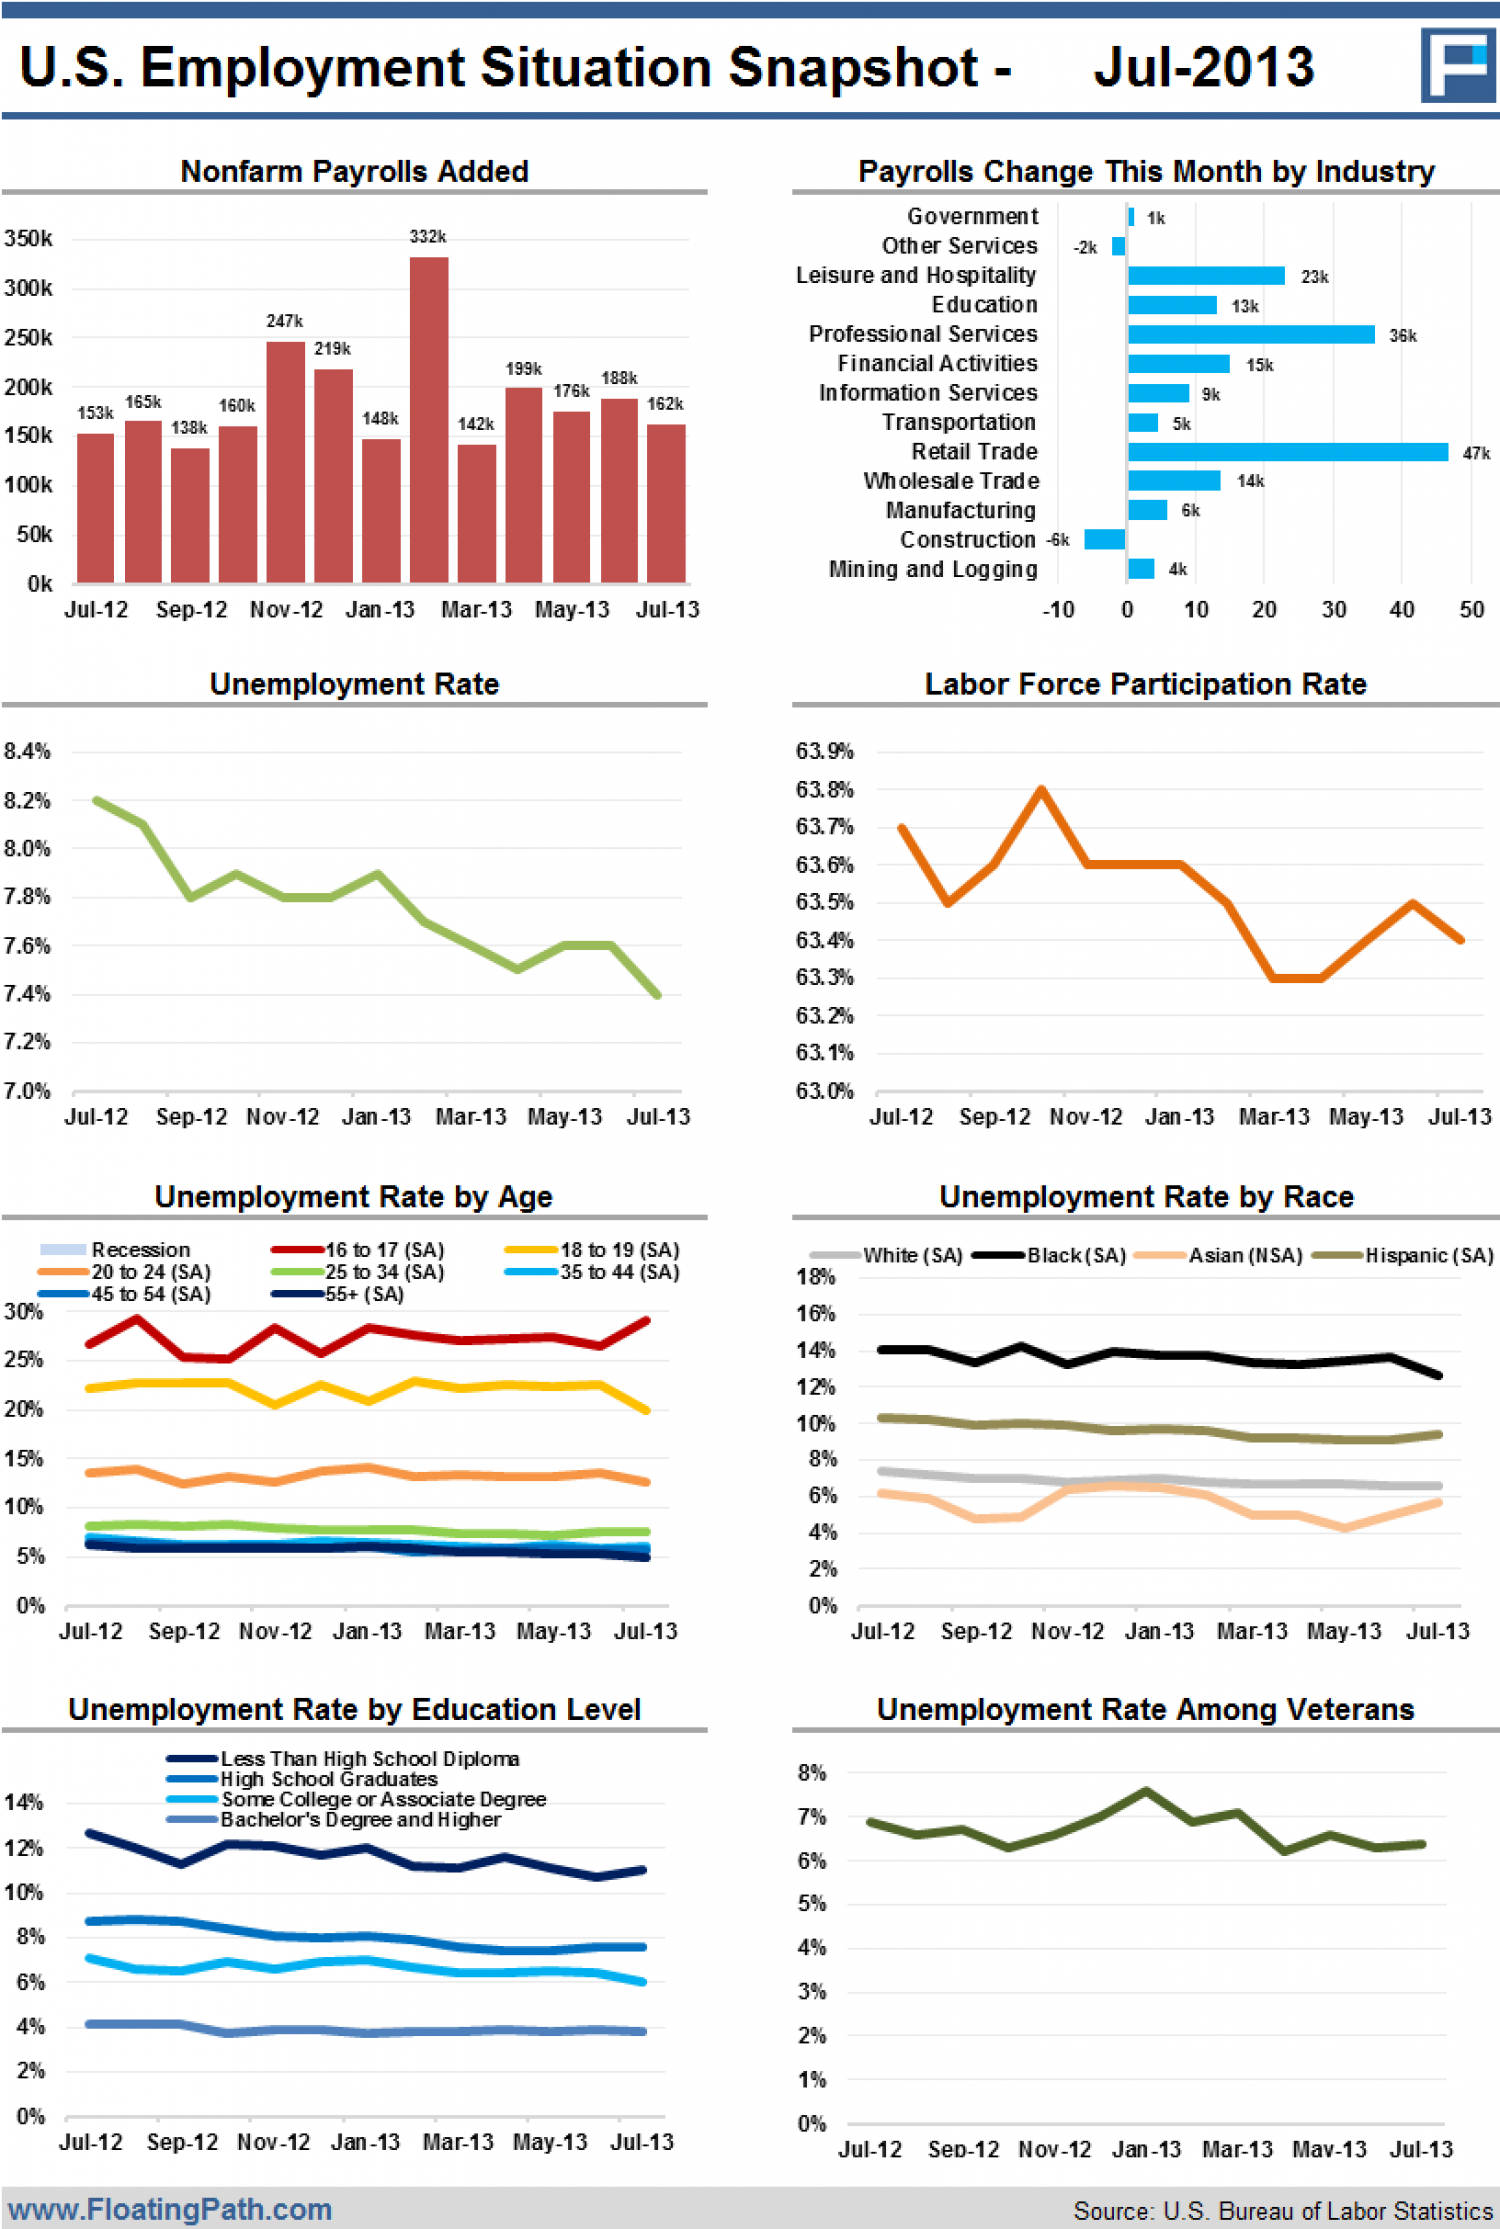 U.S. Employment Situation Snapshot - July 2013 Infographic